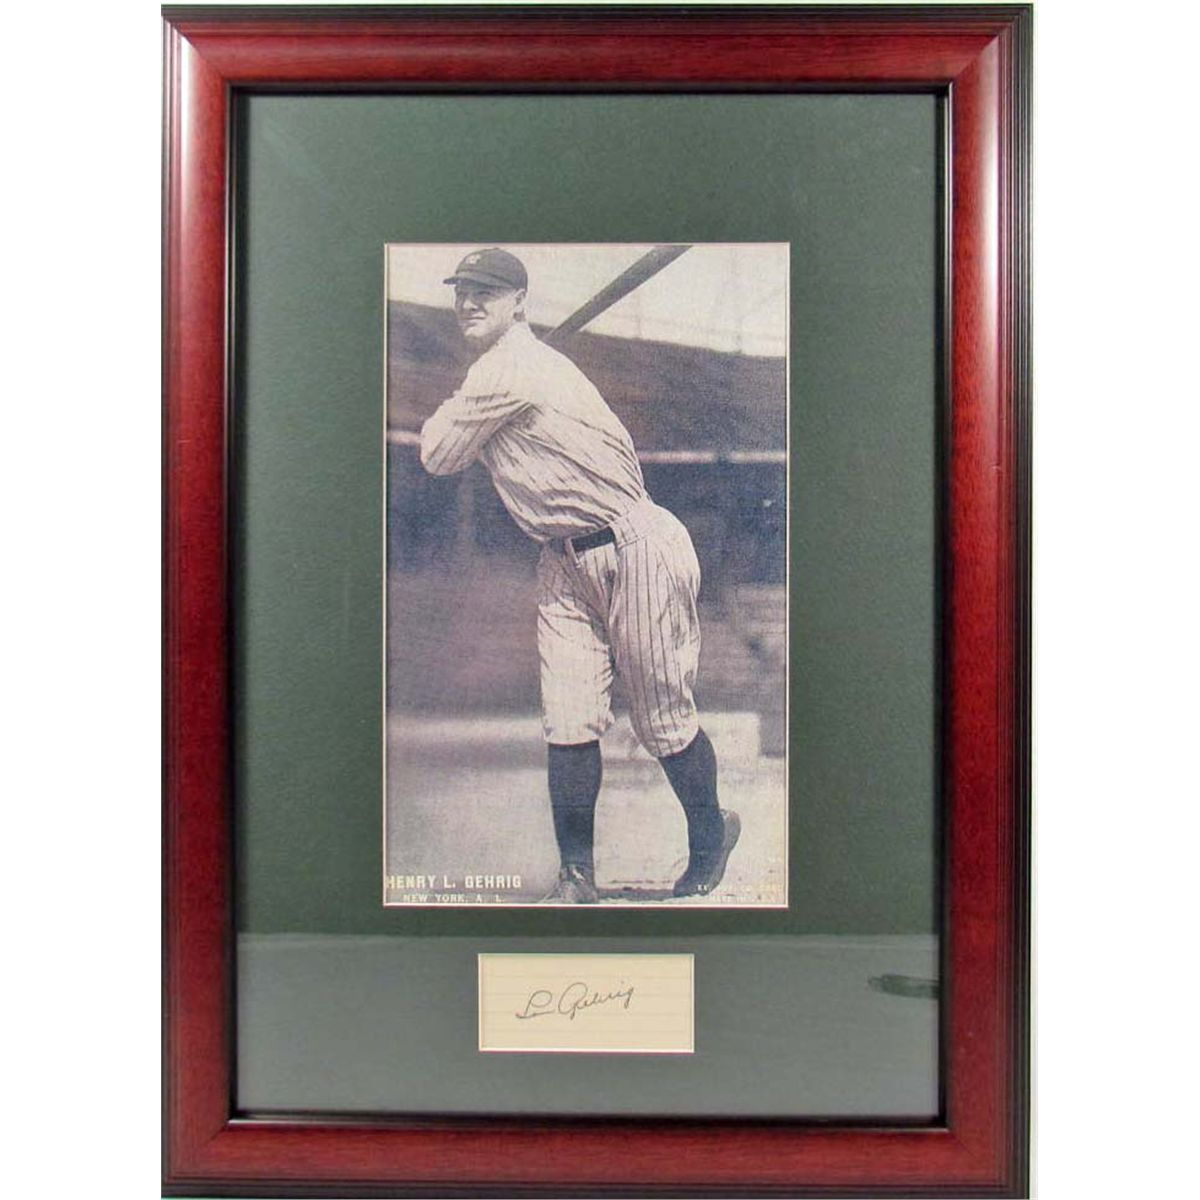 8d52eff06 Image 1 : CUT SIGNATURE OF LOU GEHRIG W/ PHOTO - FRAMED W/ COA ...